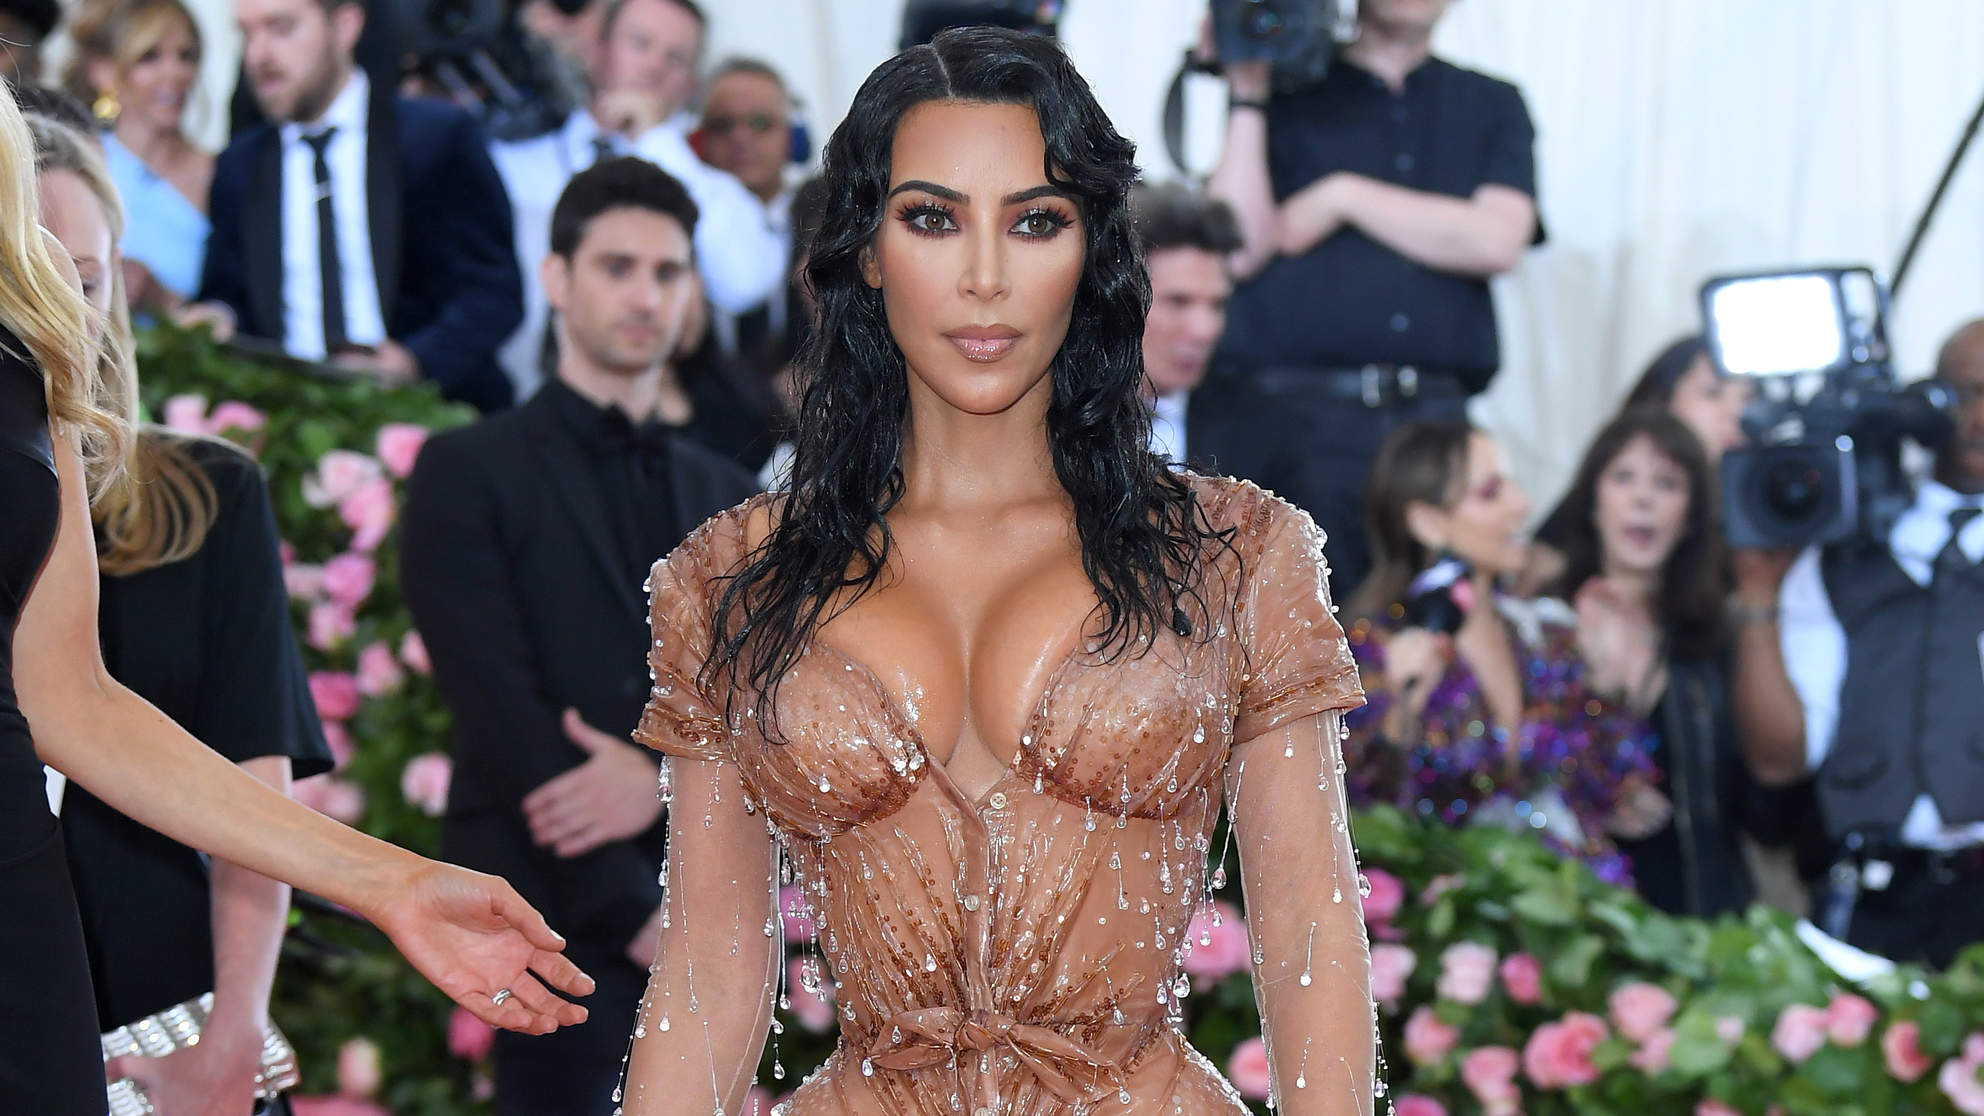 kim-kardashian celebrity woman health met-gala red-carpet fashion style